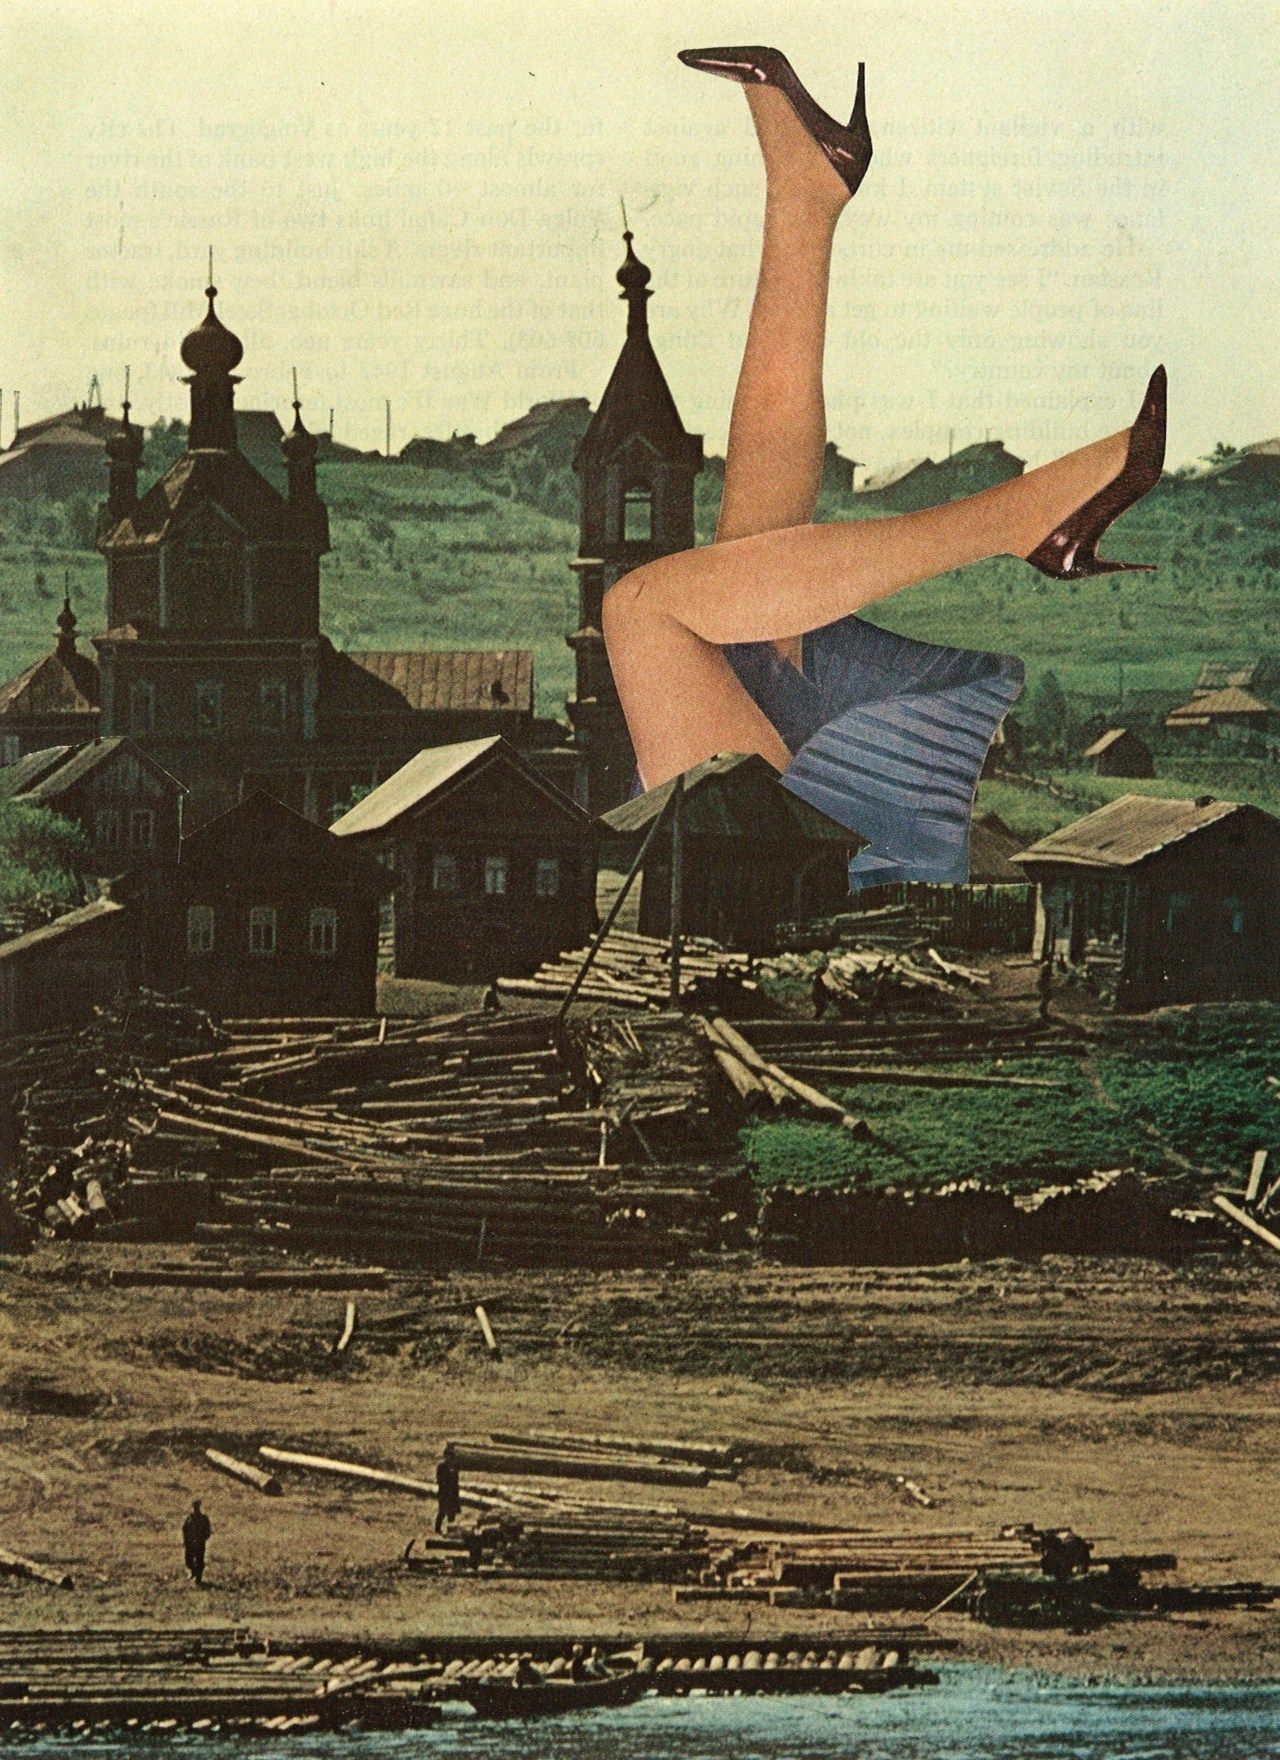 prints available at www.society6.com/studio/jessetreece/store www.collageartbyjesse.tumblr.comwww.facebook.com/collageartbyjessewww.flickr.com/photos/collageartbyjesse/